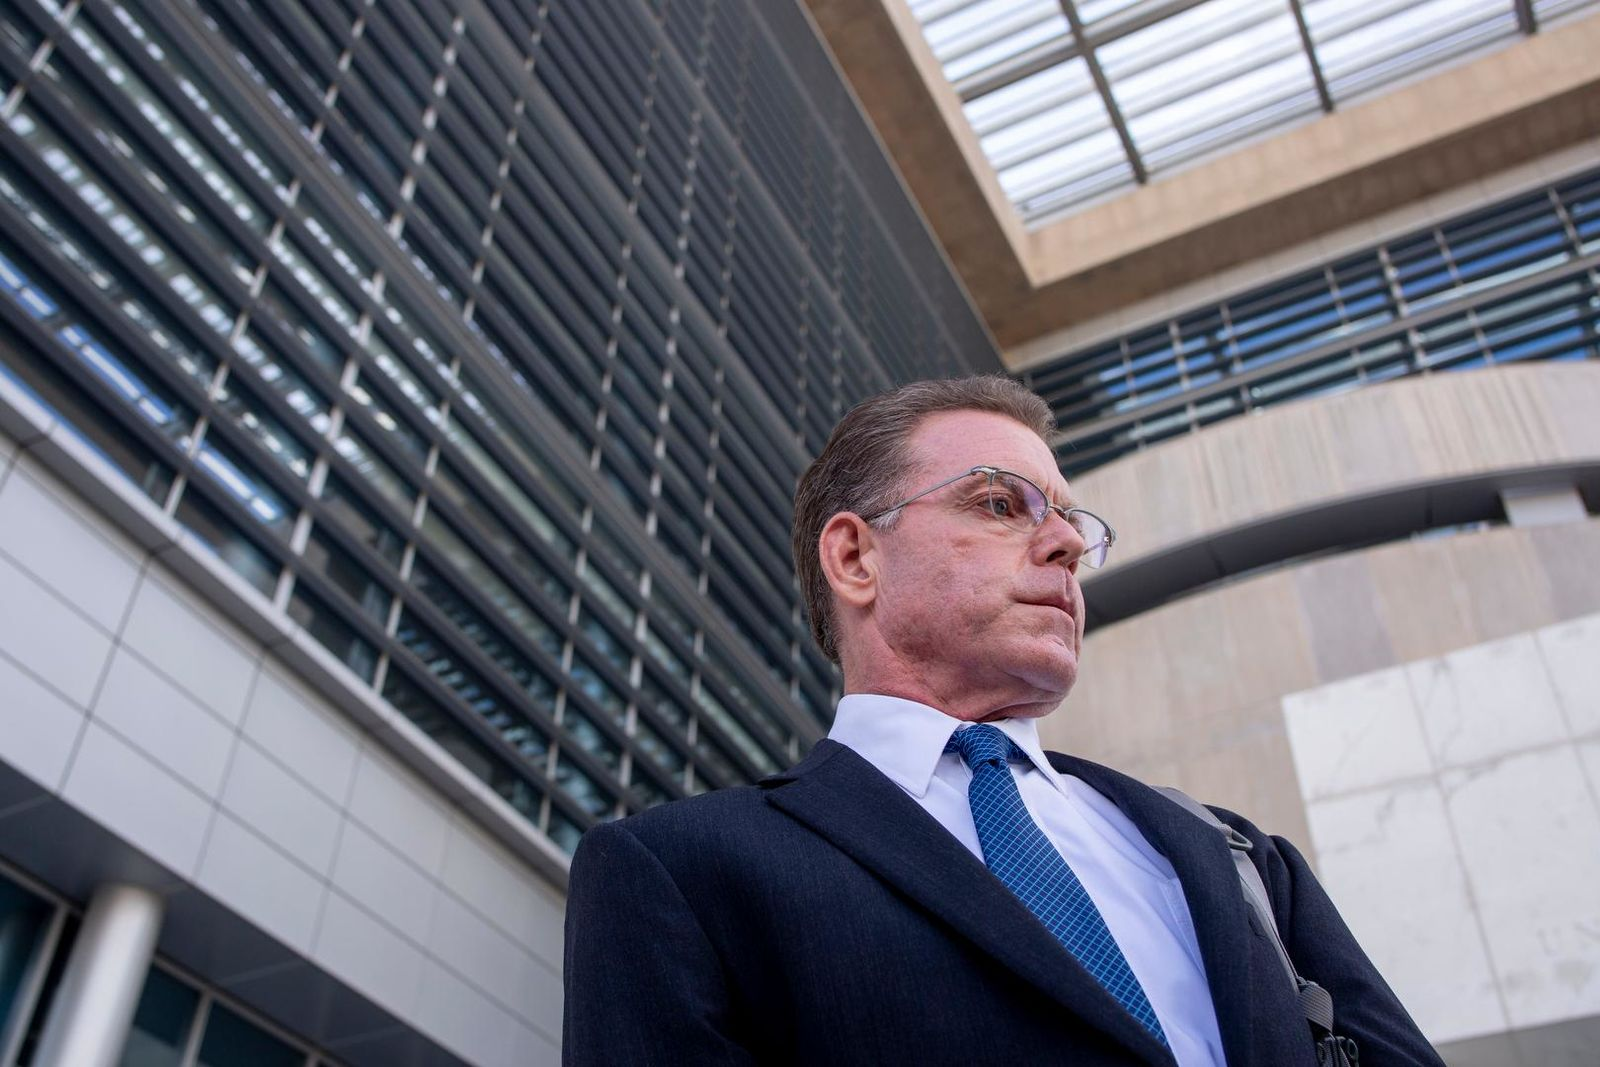 Douglas Haig leaves the Lloyd George Federal Courthouse, Tuesday Nov. 19, 2019, in Las Vegas, after pleading guilty to illegally manufacturing tracer and armor-piercing bullets found in a high-rise hotel suite where a gunman took aim before the Las Vegas Strip massacre two years ago. Haig is a 57-year-old aerospace engineer who used to reload bullets at home in Mesa, Airz., and sell them at gun shows. He isn't accused of a direct role in the Oct. 1, 2017, shooting that killed 58 people and injured hundreds at an open-air music festival.(Elizabeth Page Brumley/Las Vegas Review-Journal via AP)